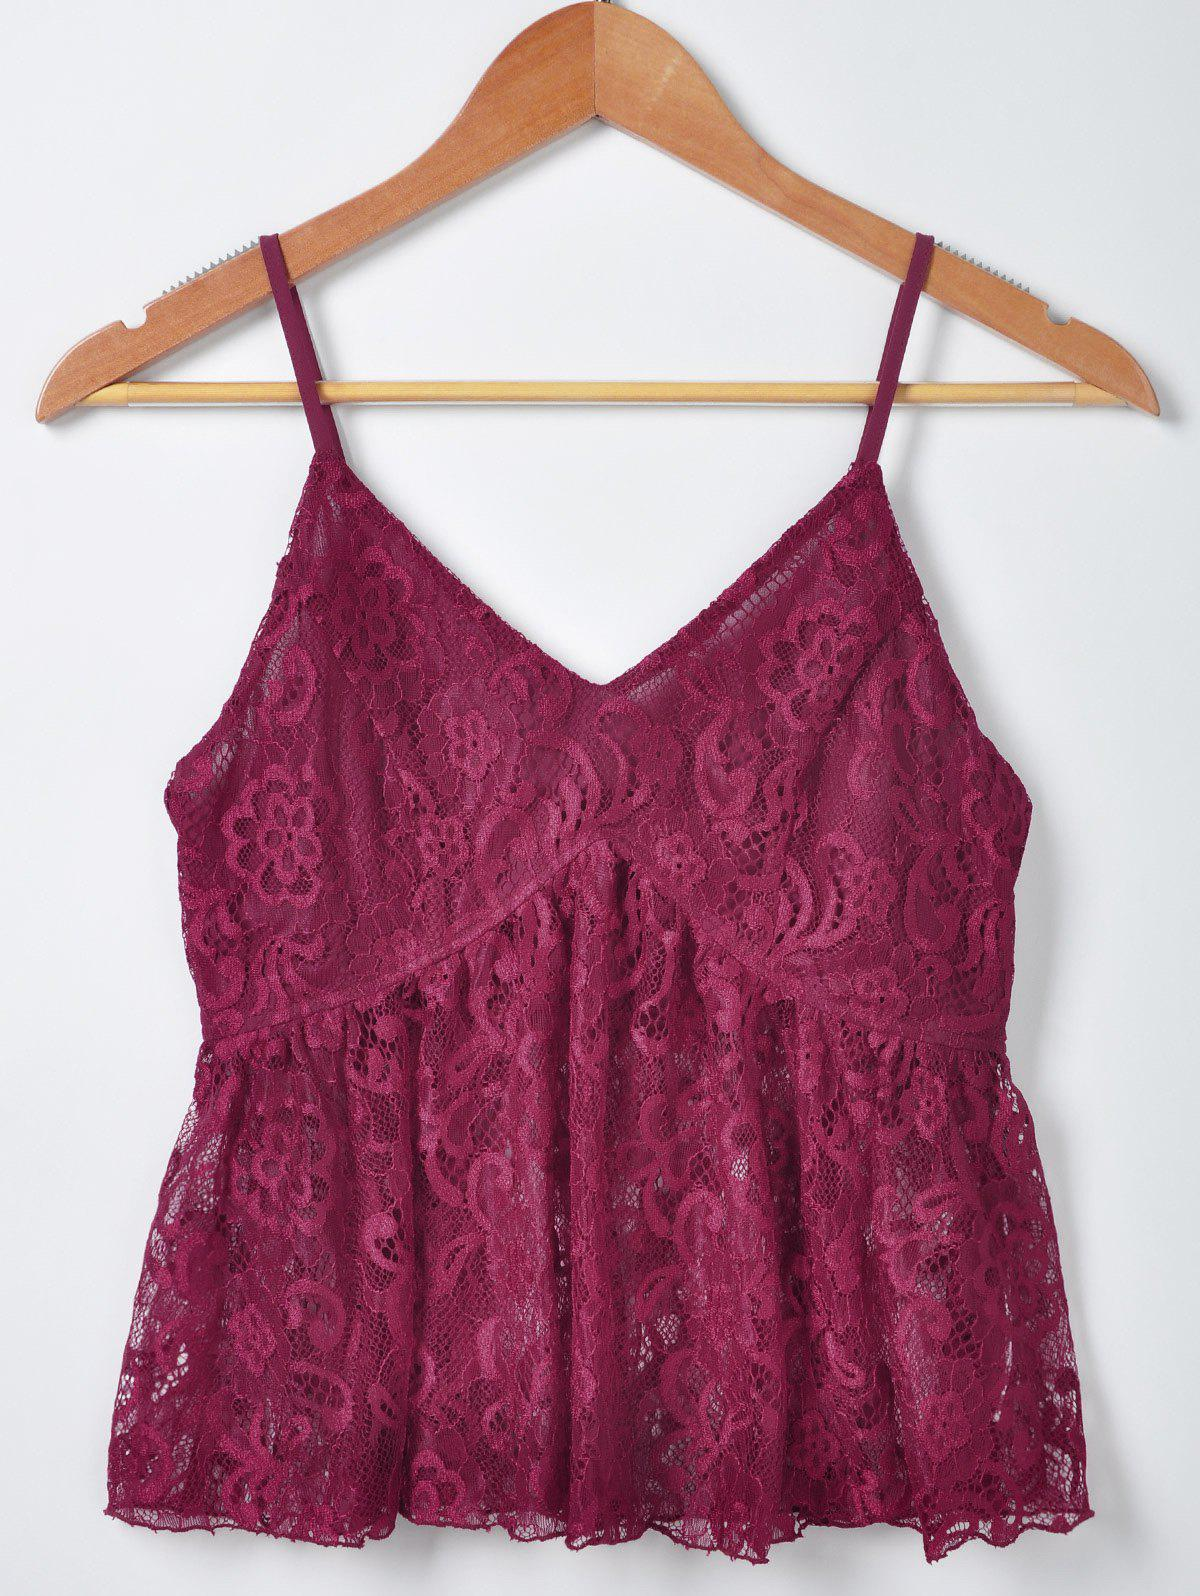 Women's Stylish Solid Color Lace Tank Top - WINE RED S